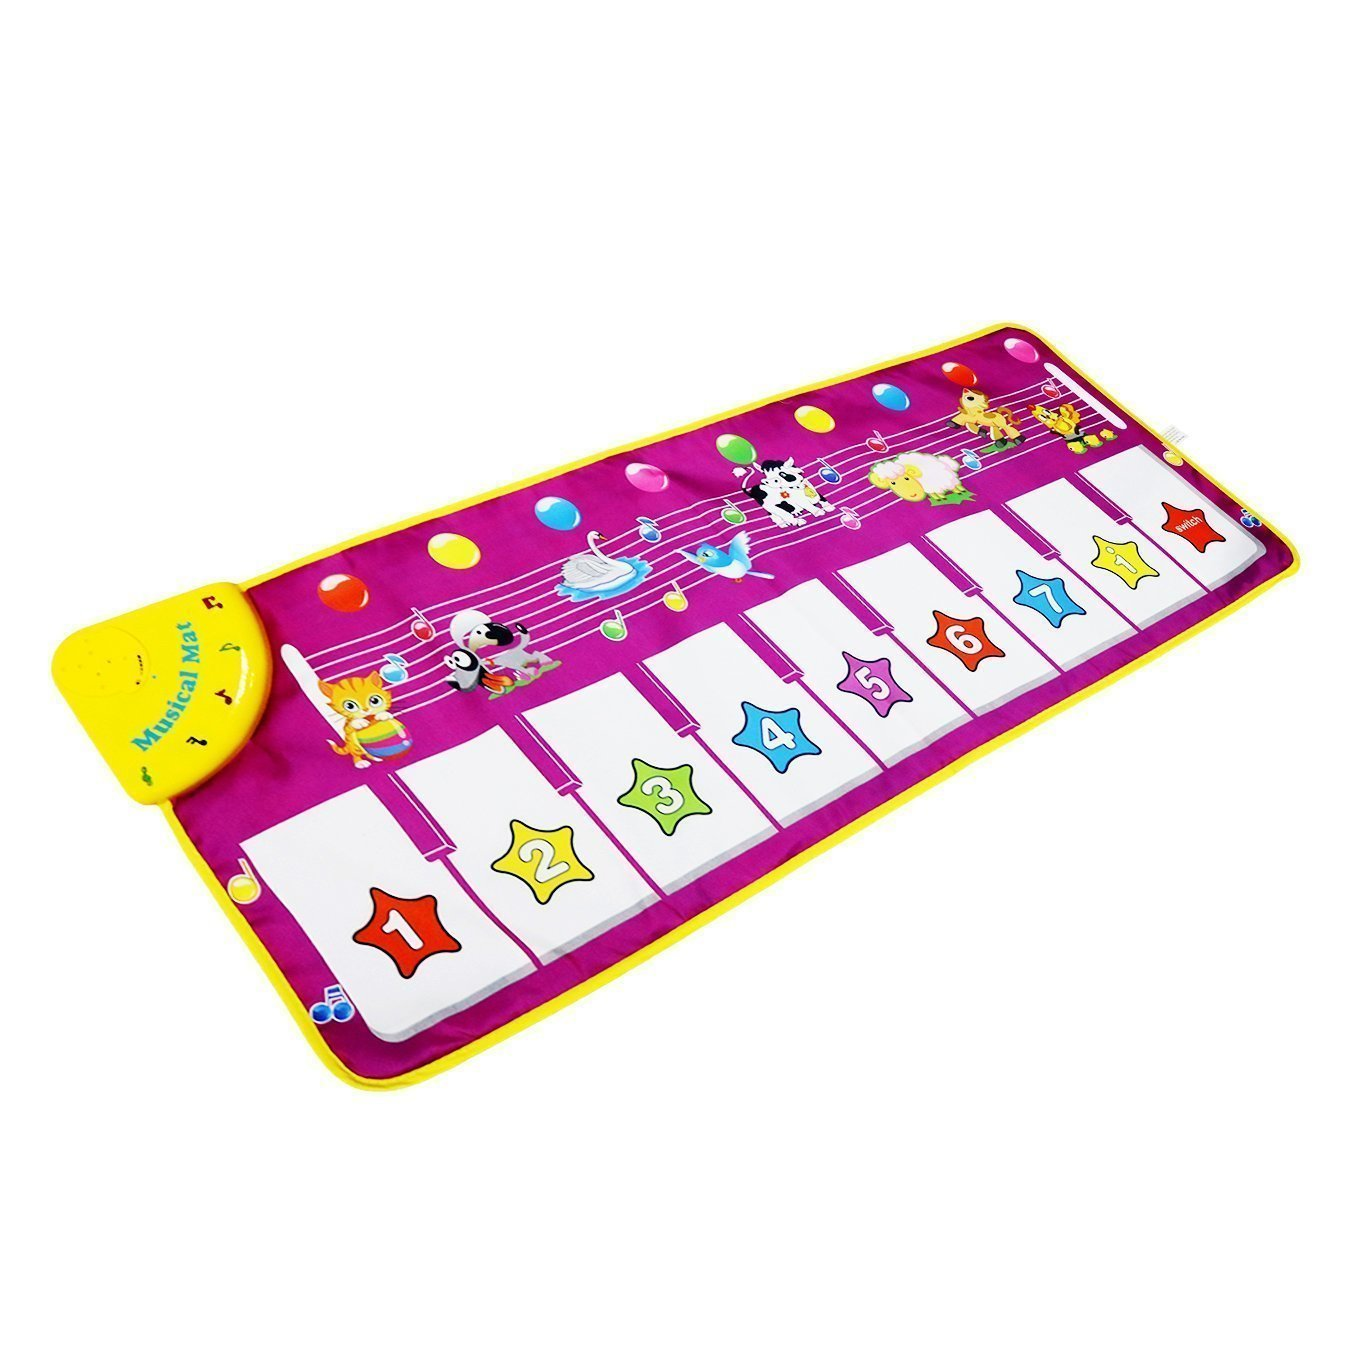 Musical Mat, Kingseye Baby Early Education Music Piano Keyboard Carpet Animal Blanket Touch Play Safety Learn Singing funny Toy for Kids (Purple) KSE-Musicmat